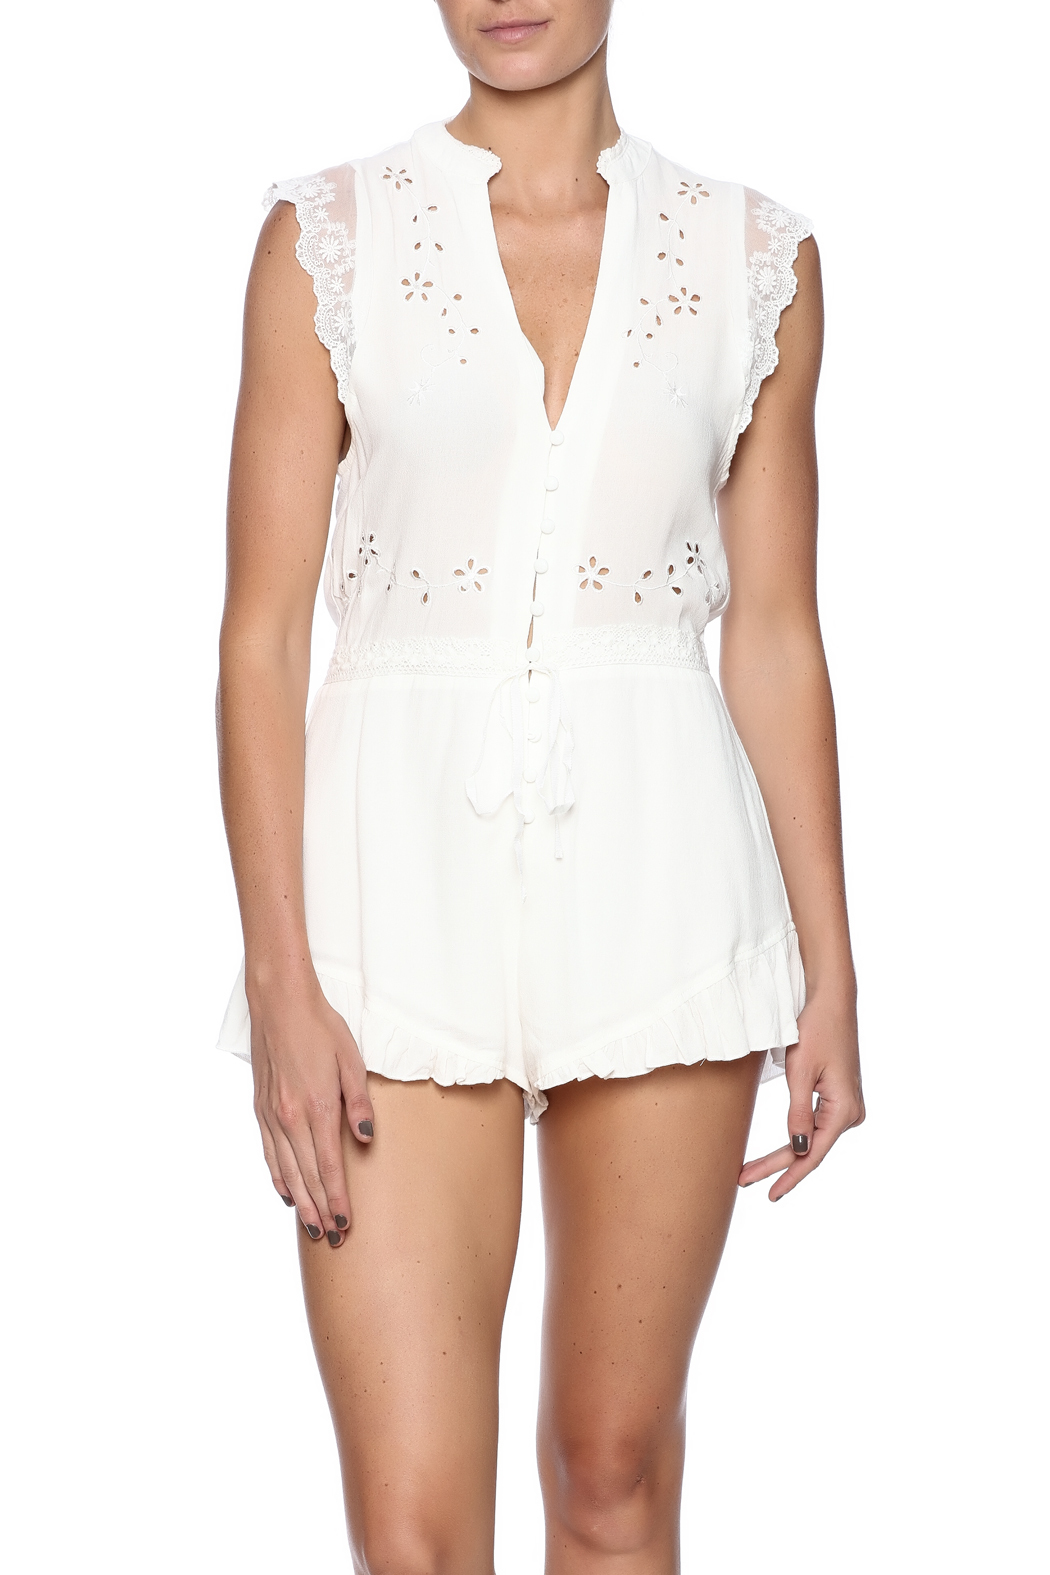 ef67ef1dbc9 ecru lab Eyelet Lace Romper from New York by Dor L Dor — Shoptiques